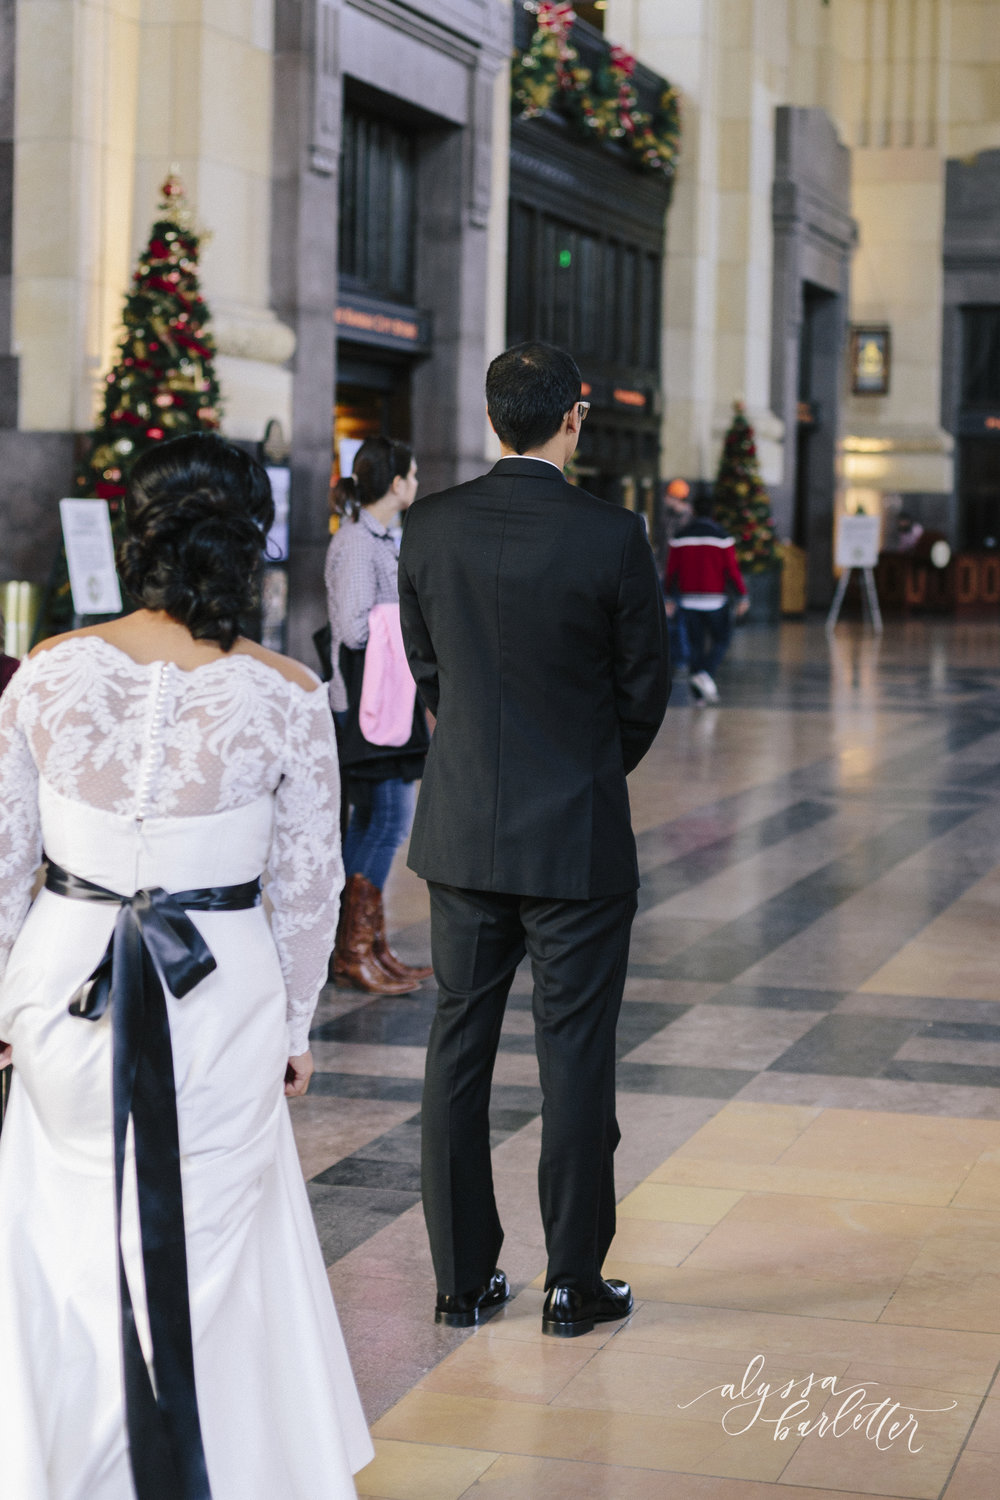 alyssa barletter photography union station wedding photos leopard print winter wedding-1-16.jpg